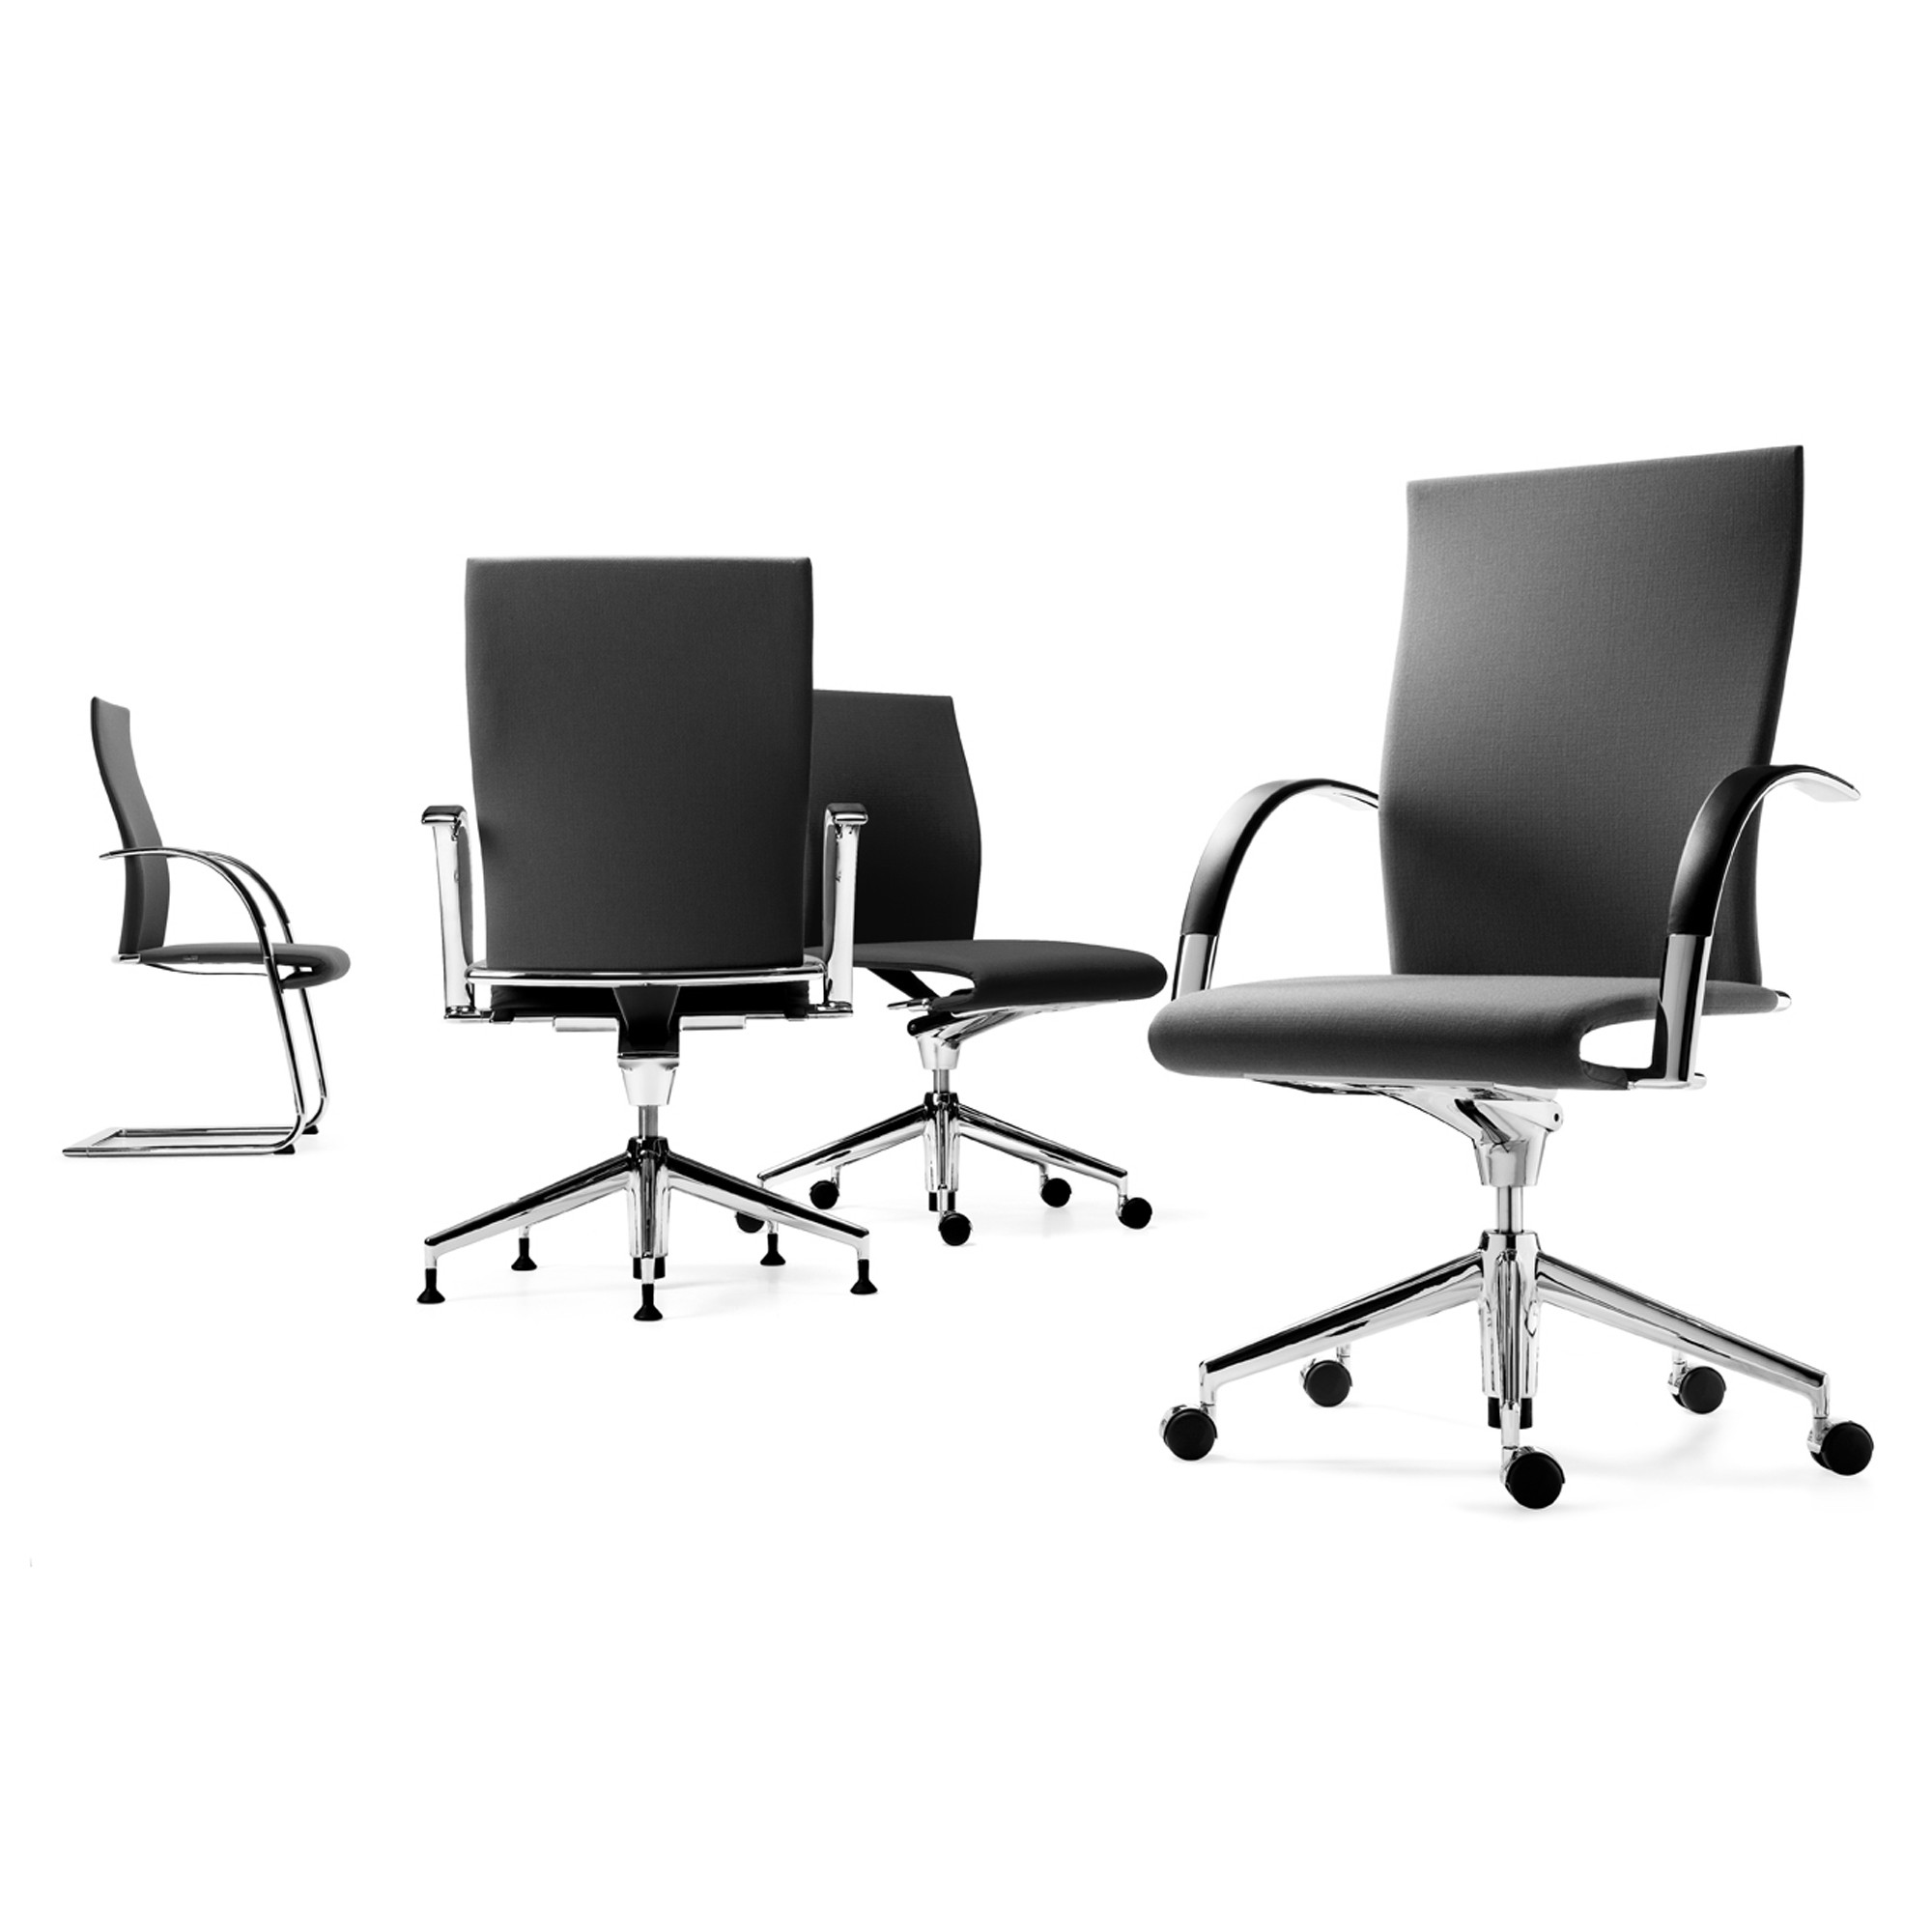 Ahrend 350 Swivel Chairs